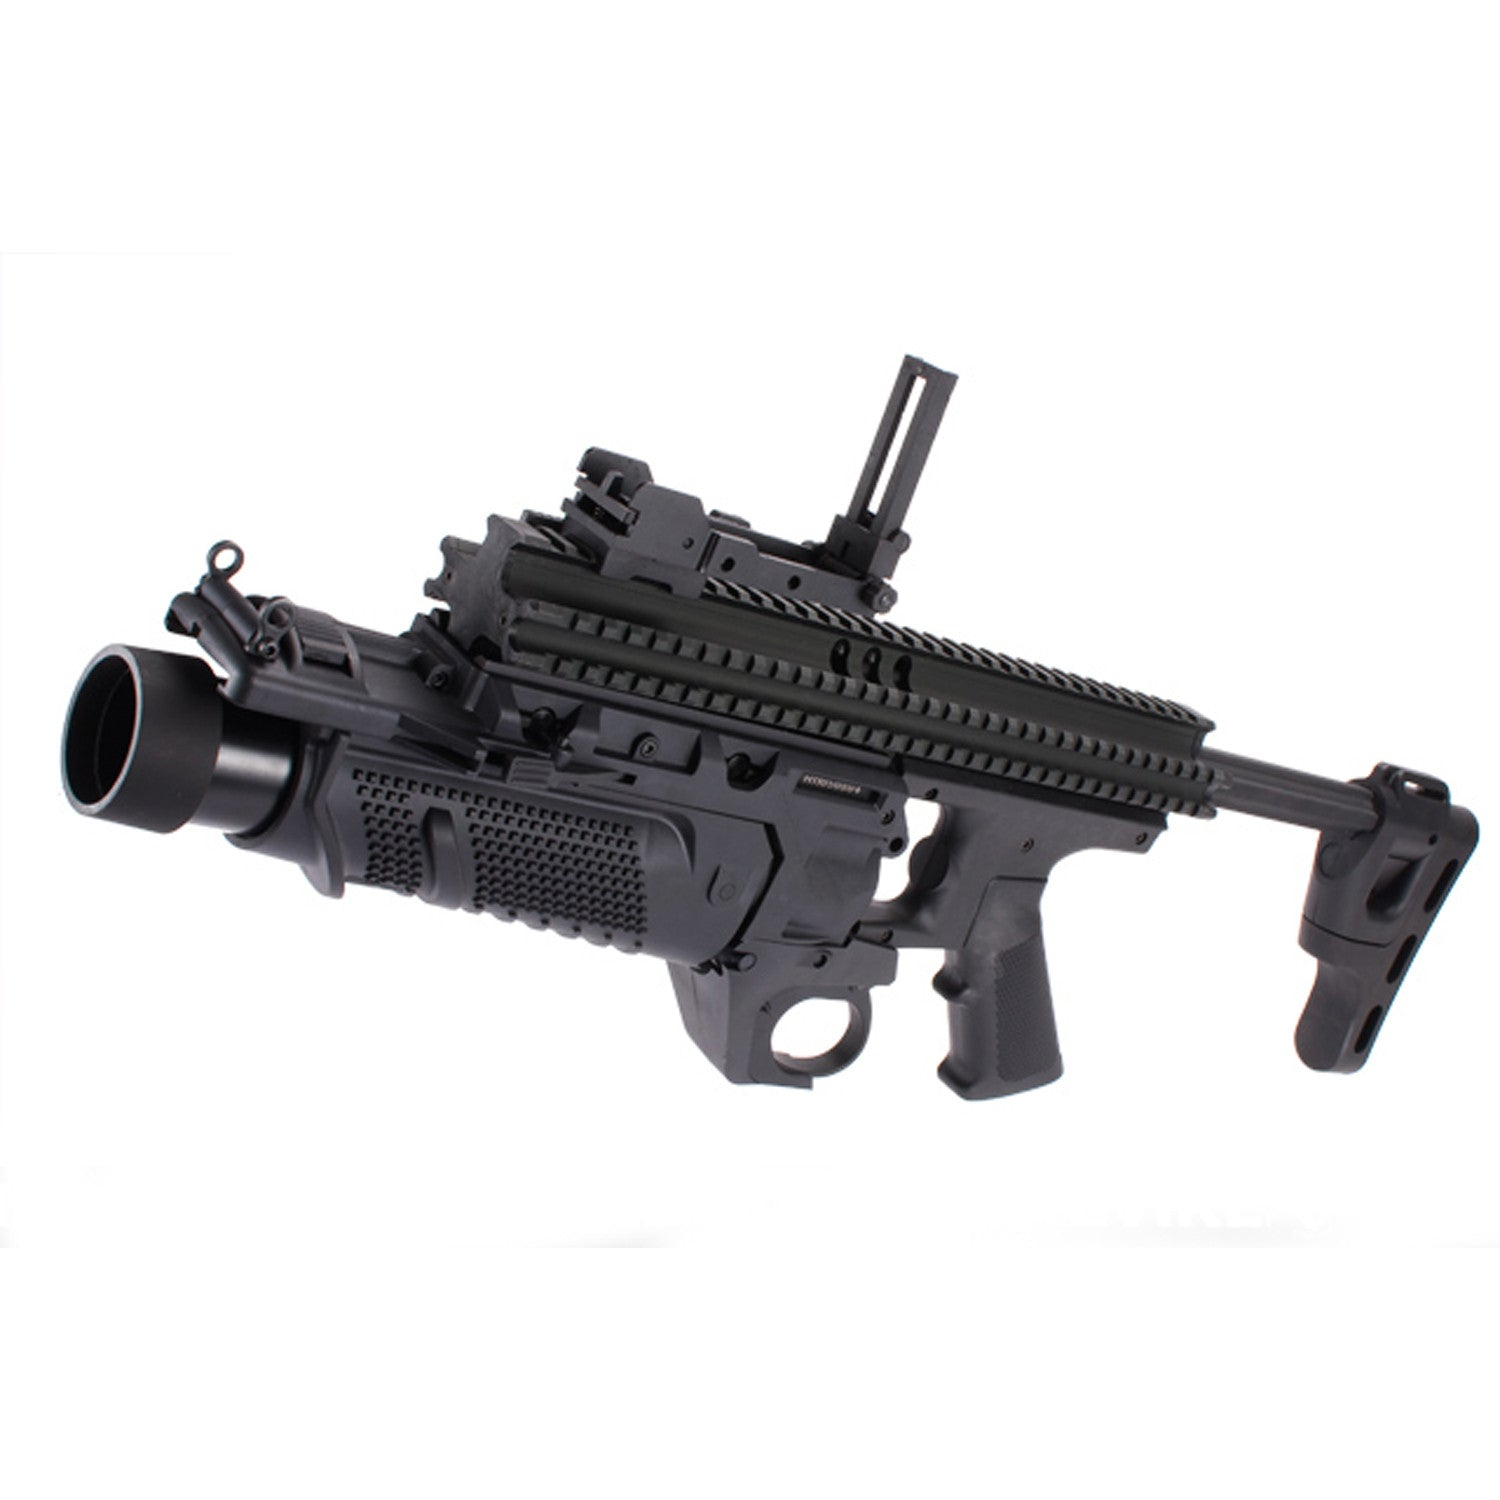 EGLM Airsoft Grenade Launcher with RIS Kit